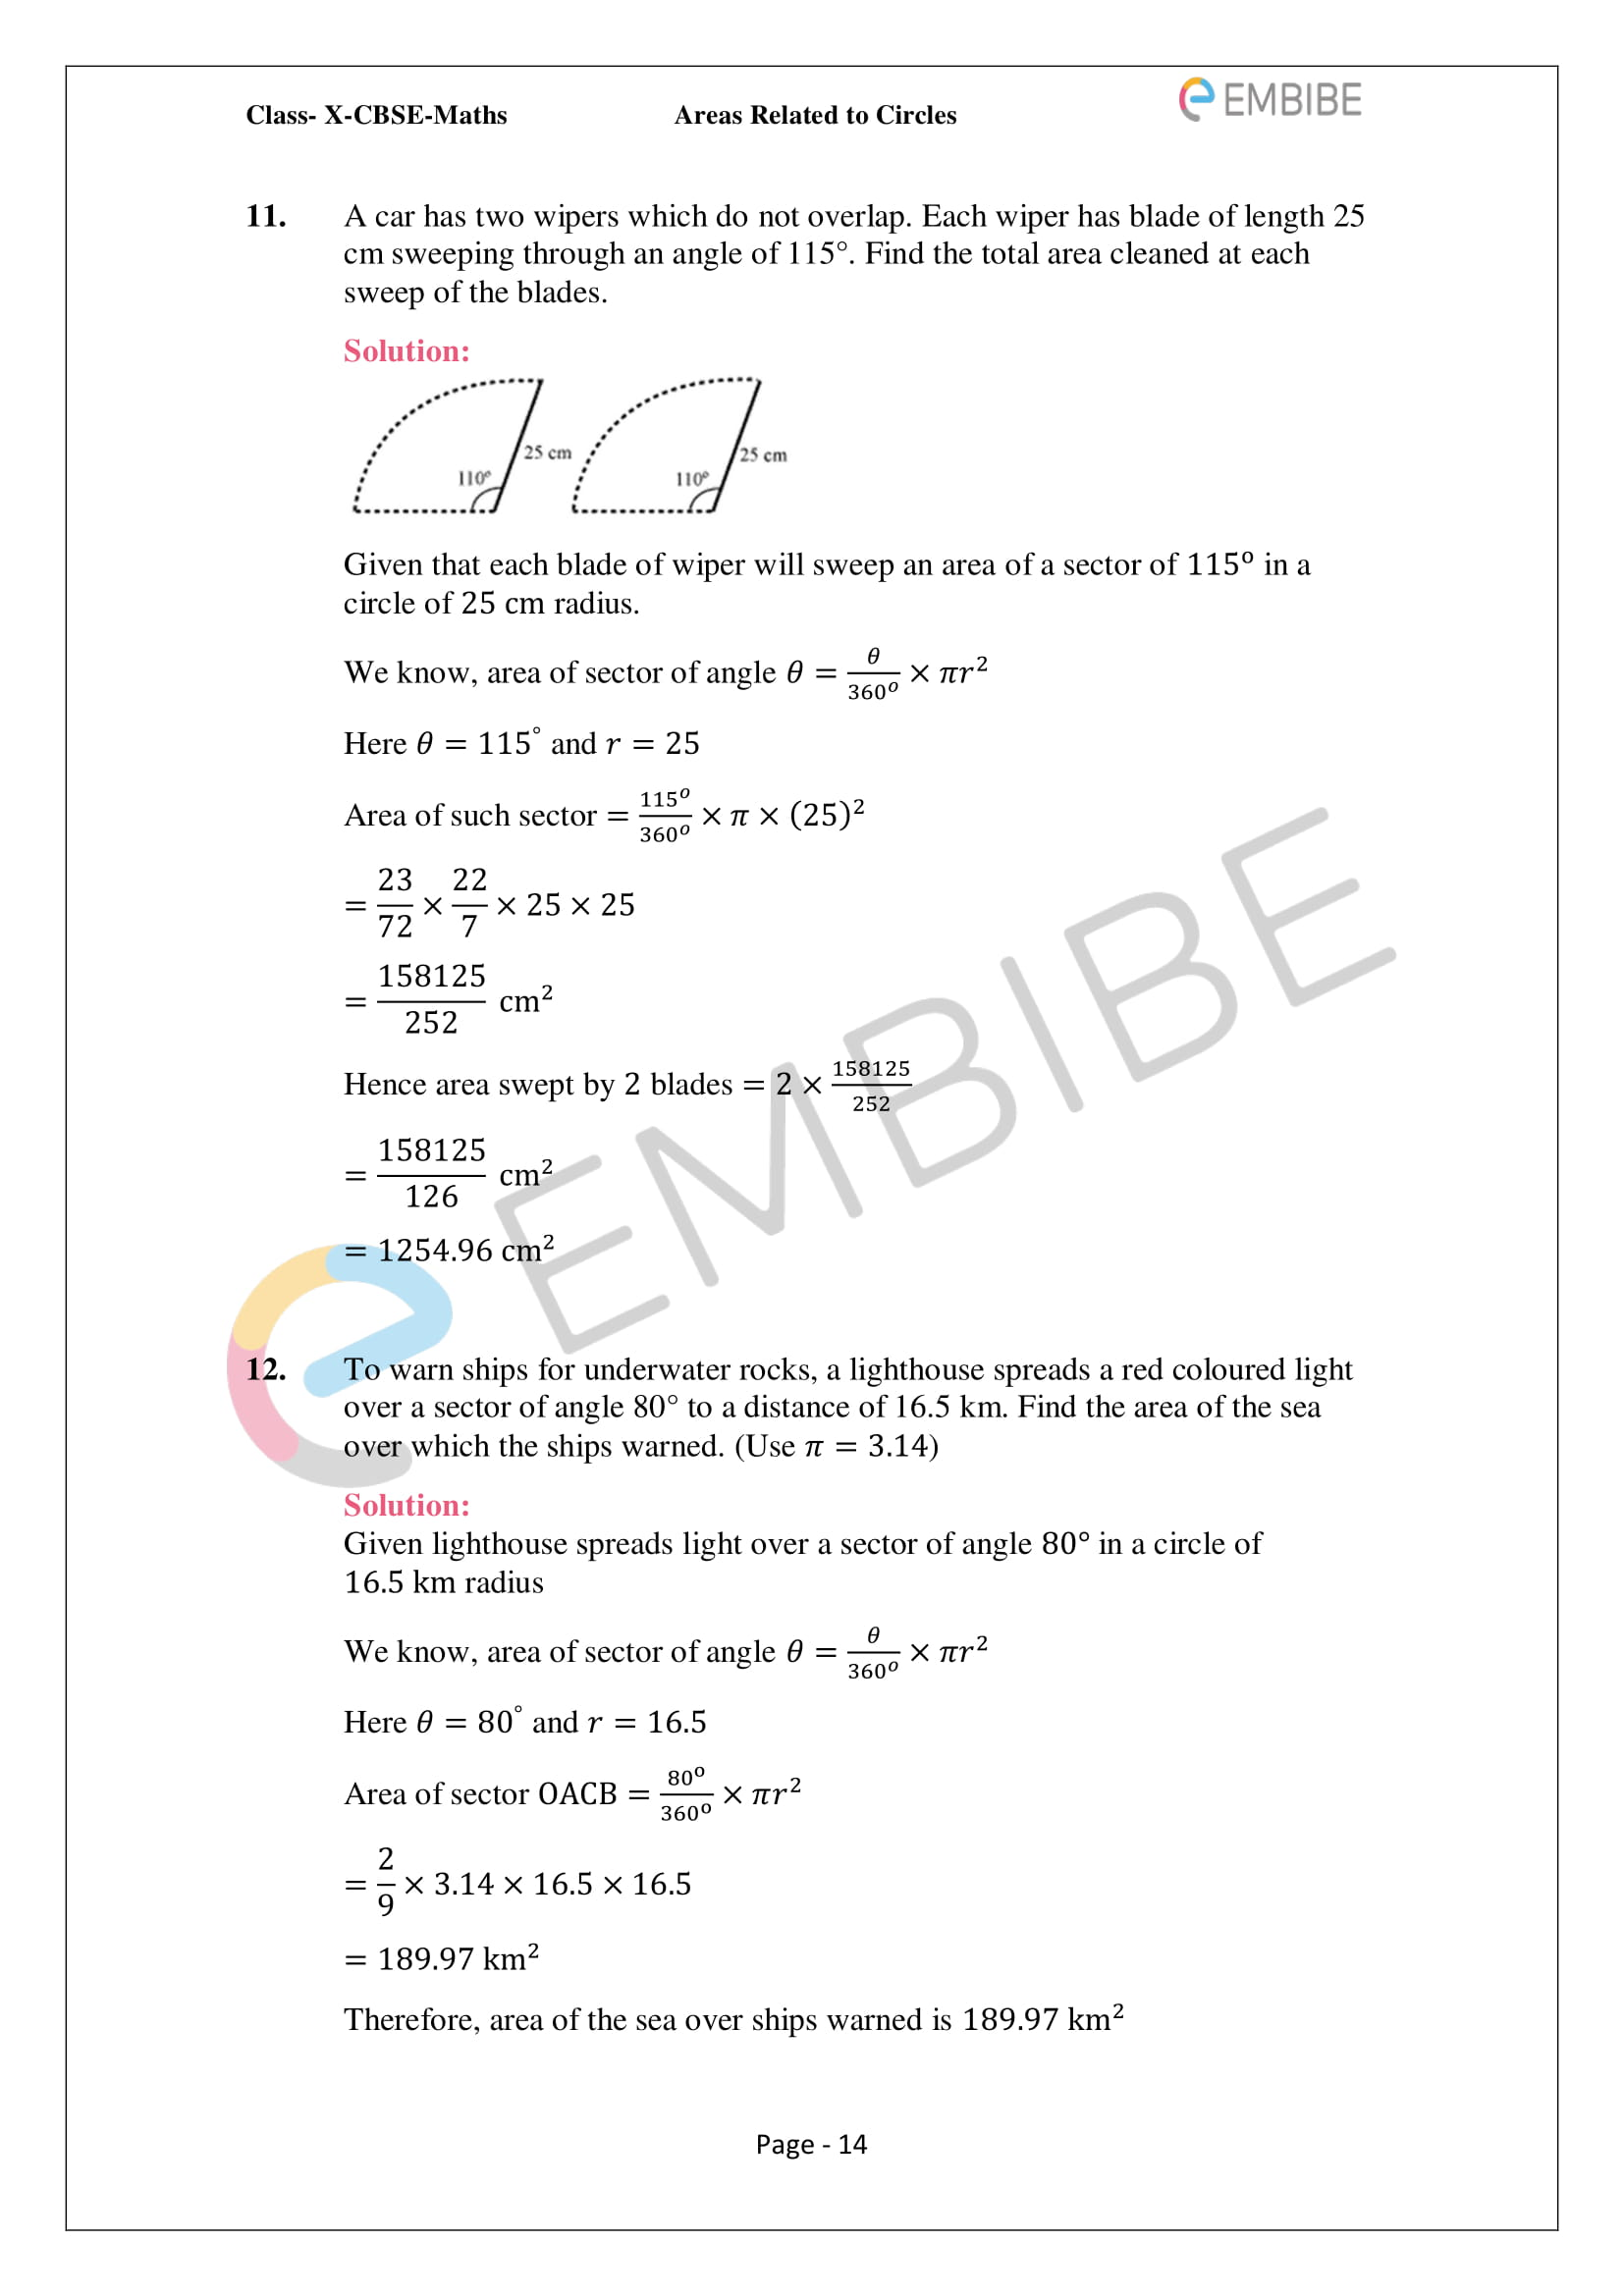 CBSE NCERT Solutions For Class 10 Maths Chapter 12 - Areas Related To Circle - 14